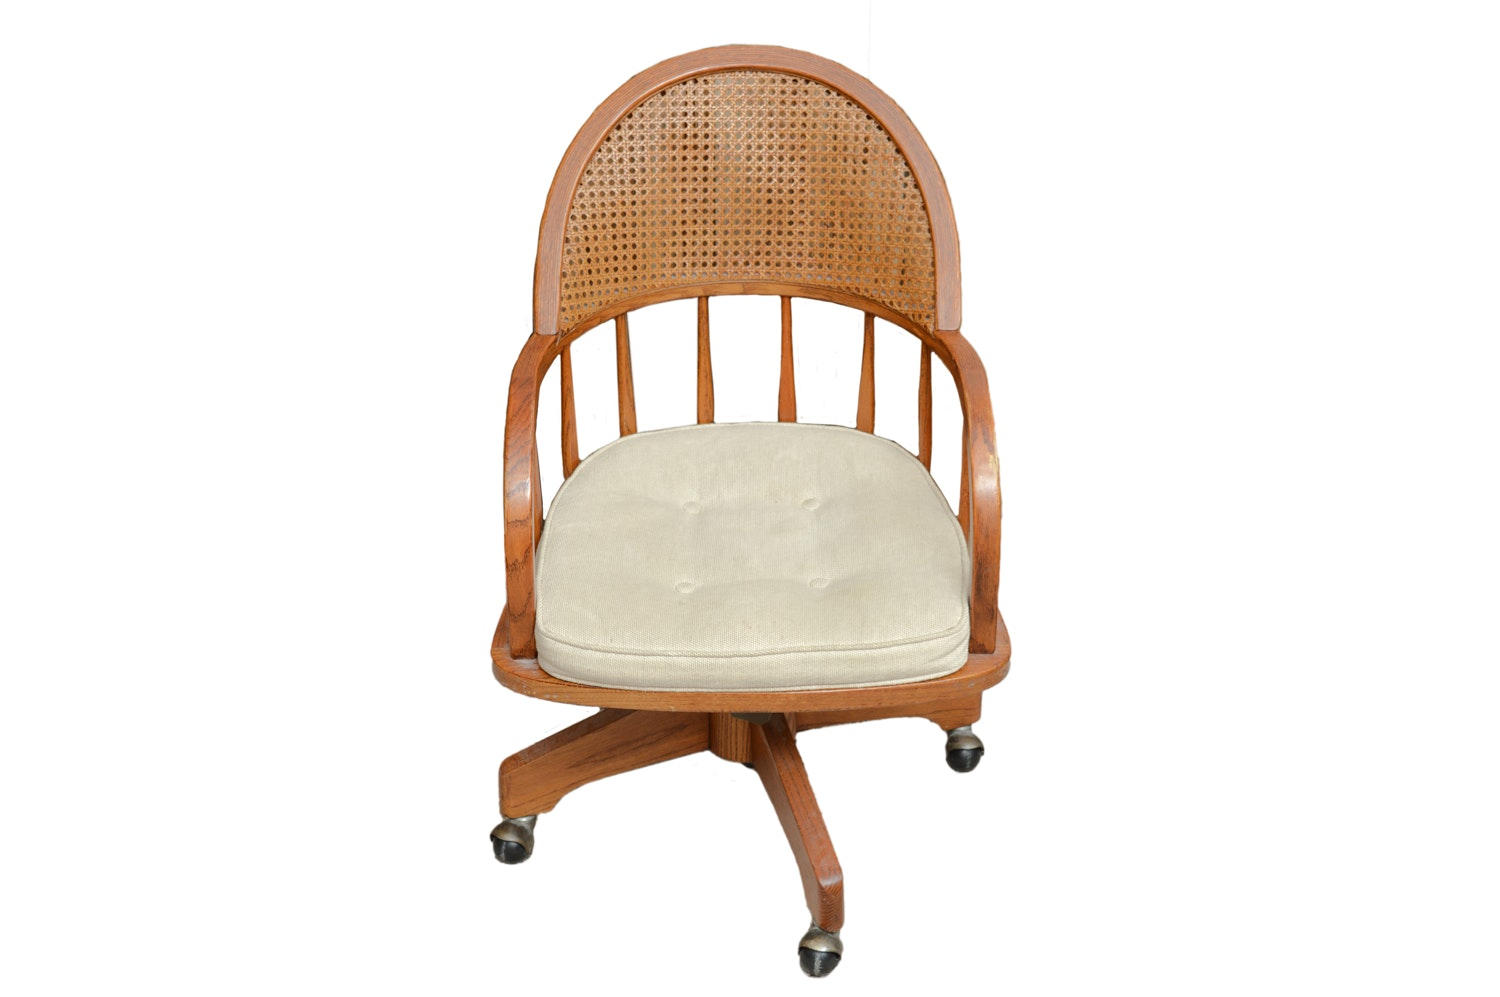 Caned-Back Oak Desk Chair